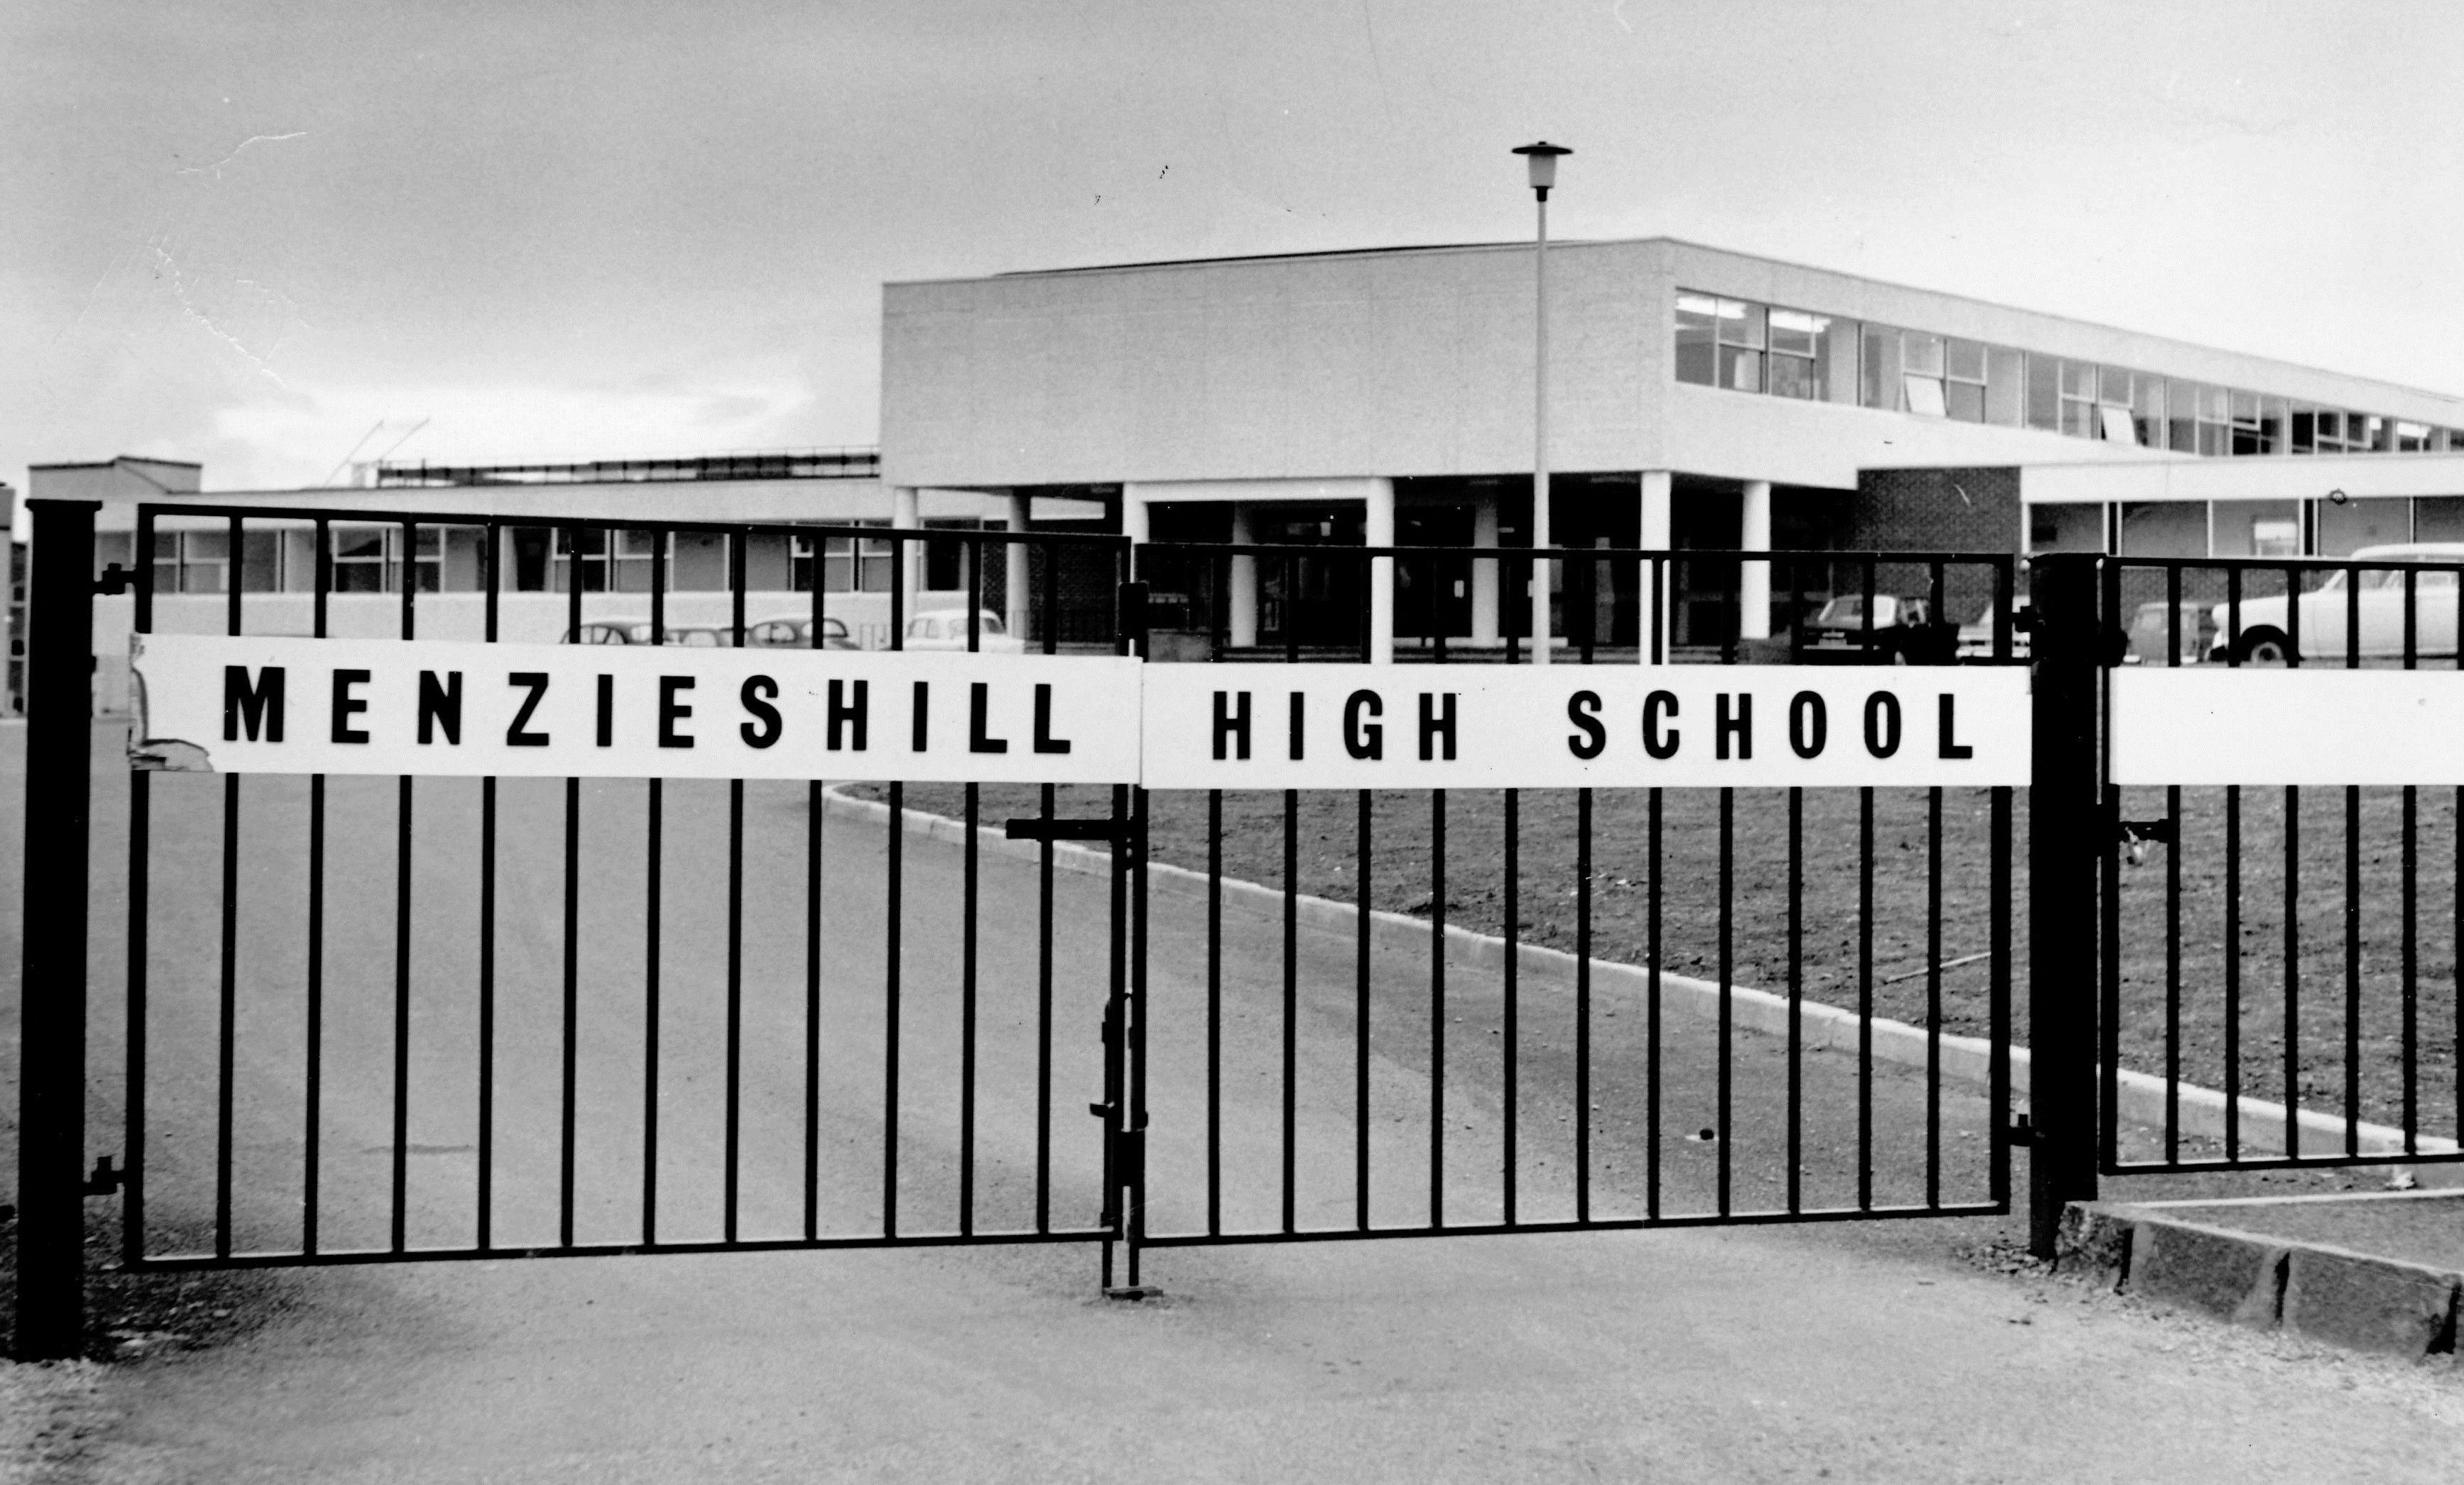 Menzieshill High School is closing after decades at the heart of the local community.